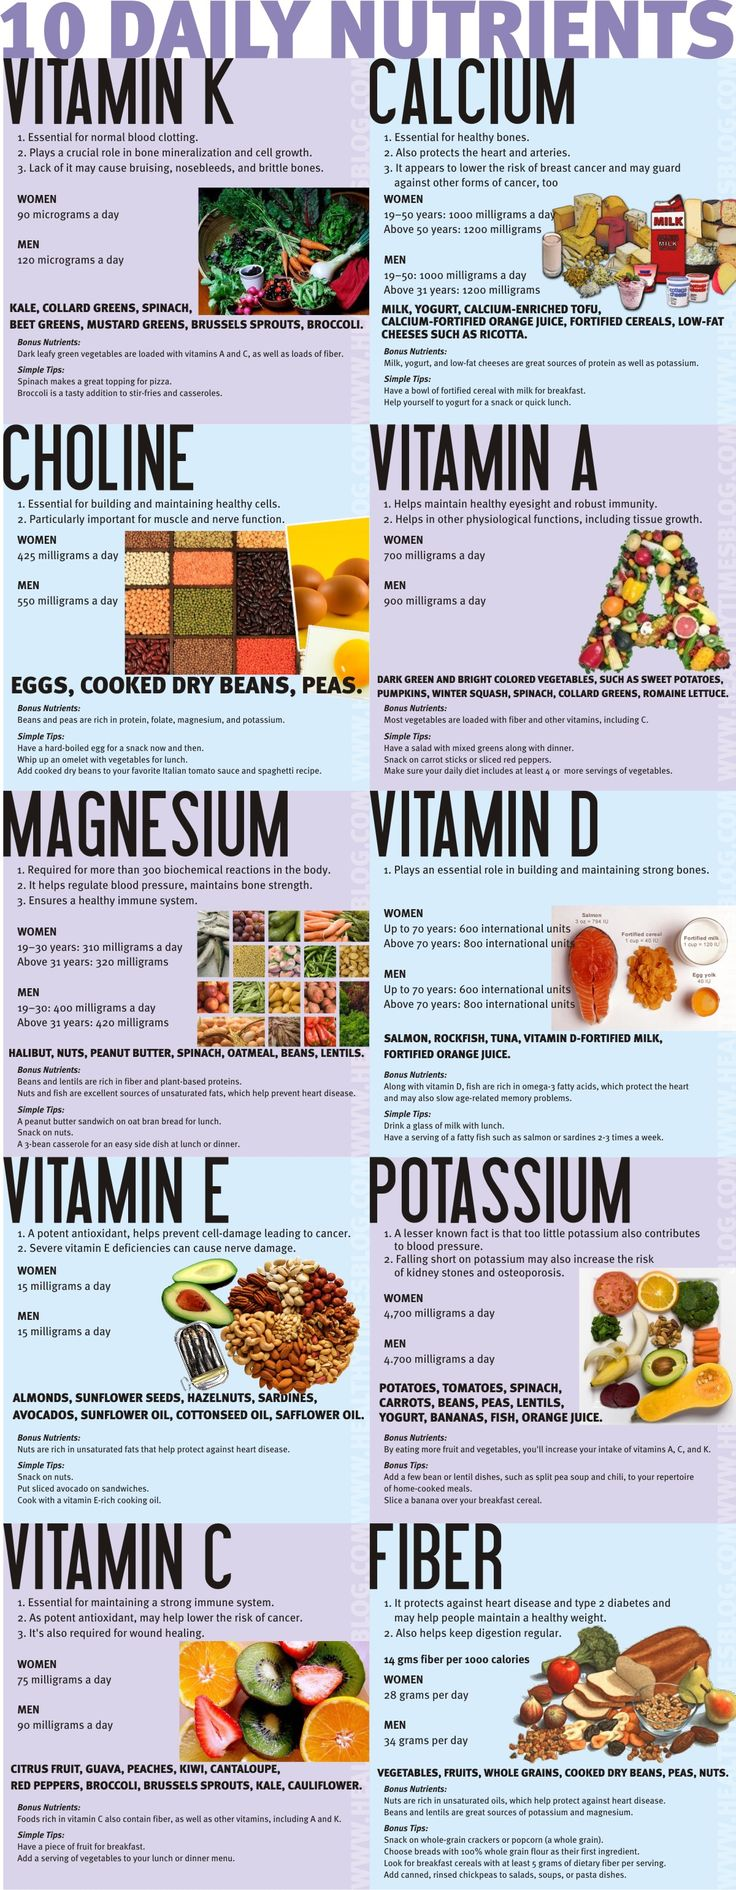 §130.245. Lifetime Nutrition and Wellness (One-Half to One Credit).(c) Knowledge and skills.(1) The student understands the role of nutrients in the body. The student is expected to: (A) classify nutrients, their functions, and food sources and compare the nutritive value of various foods;